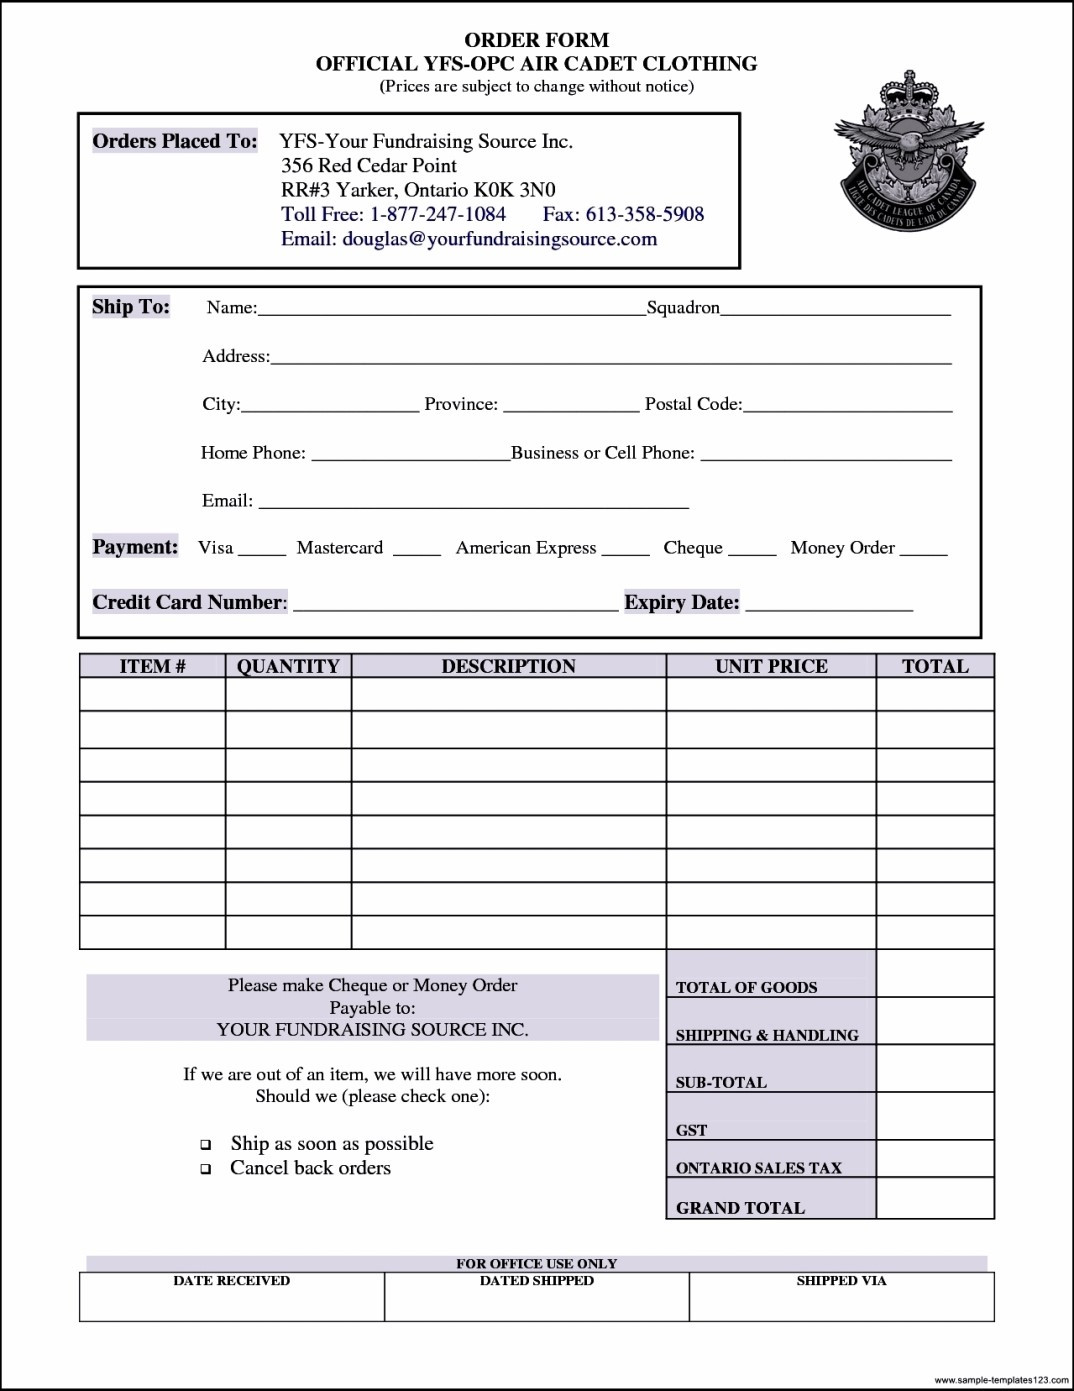 Work order form Template